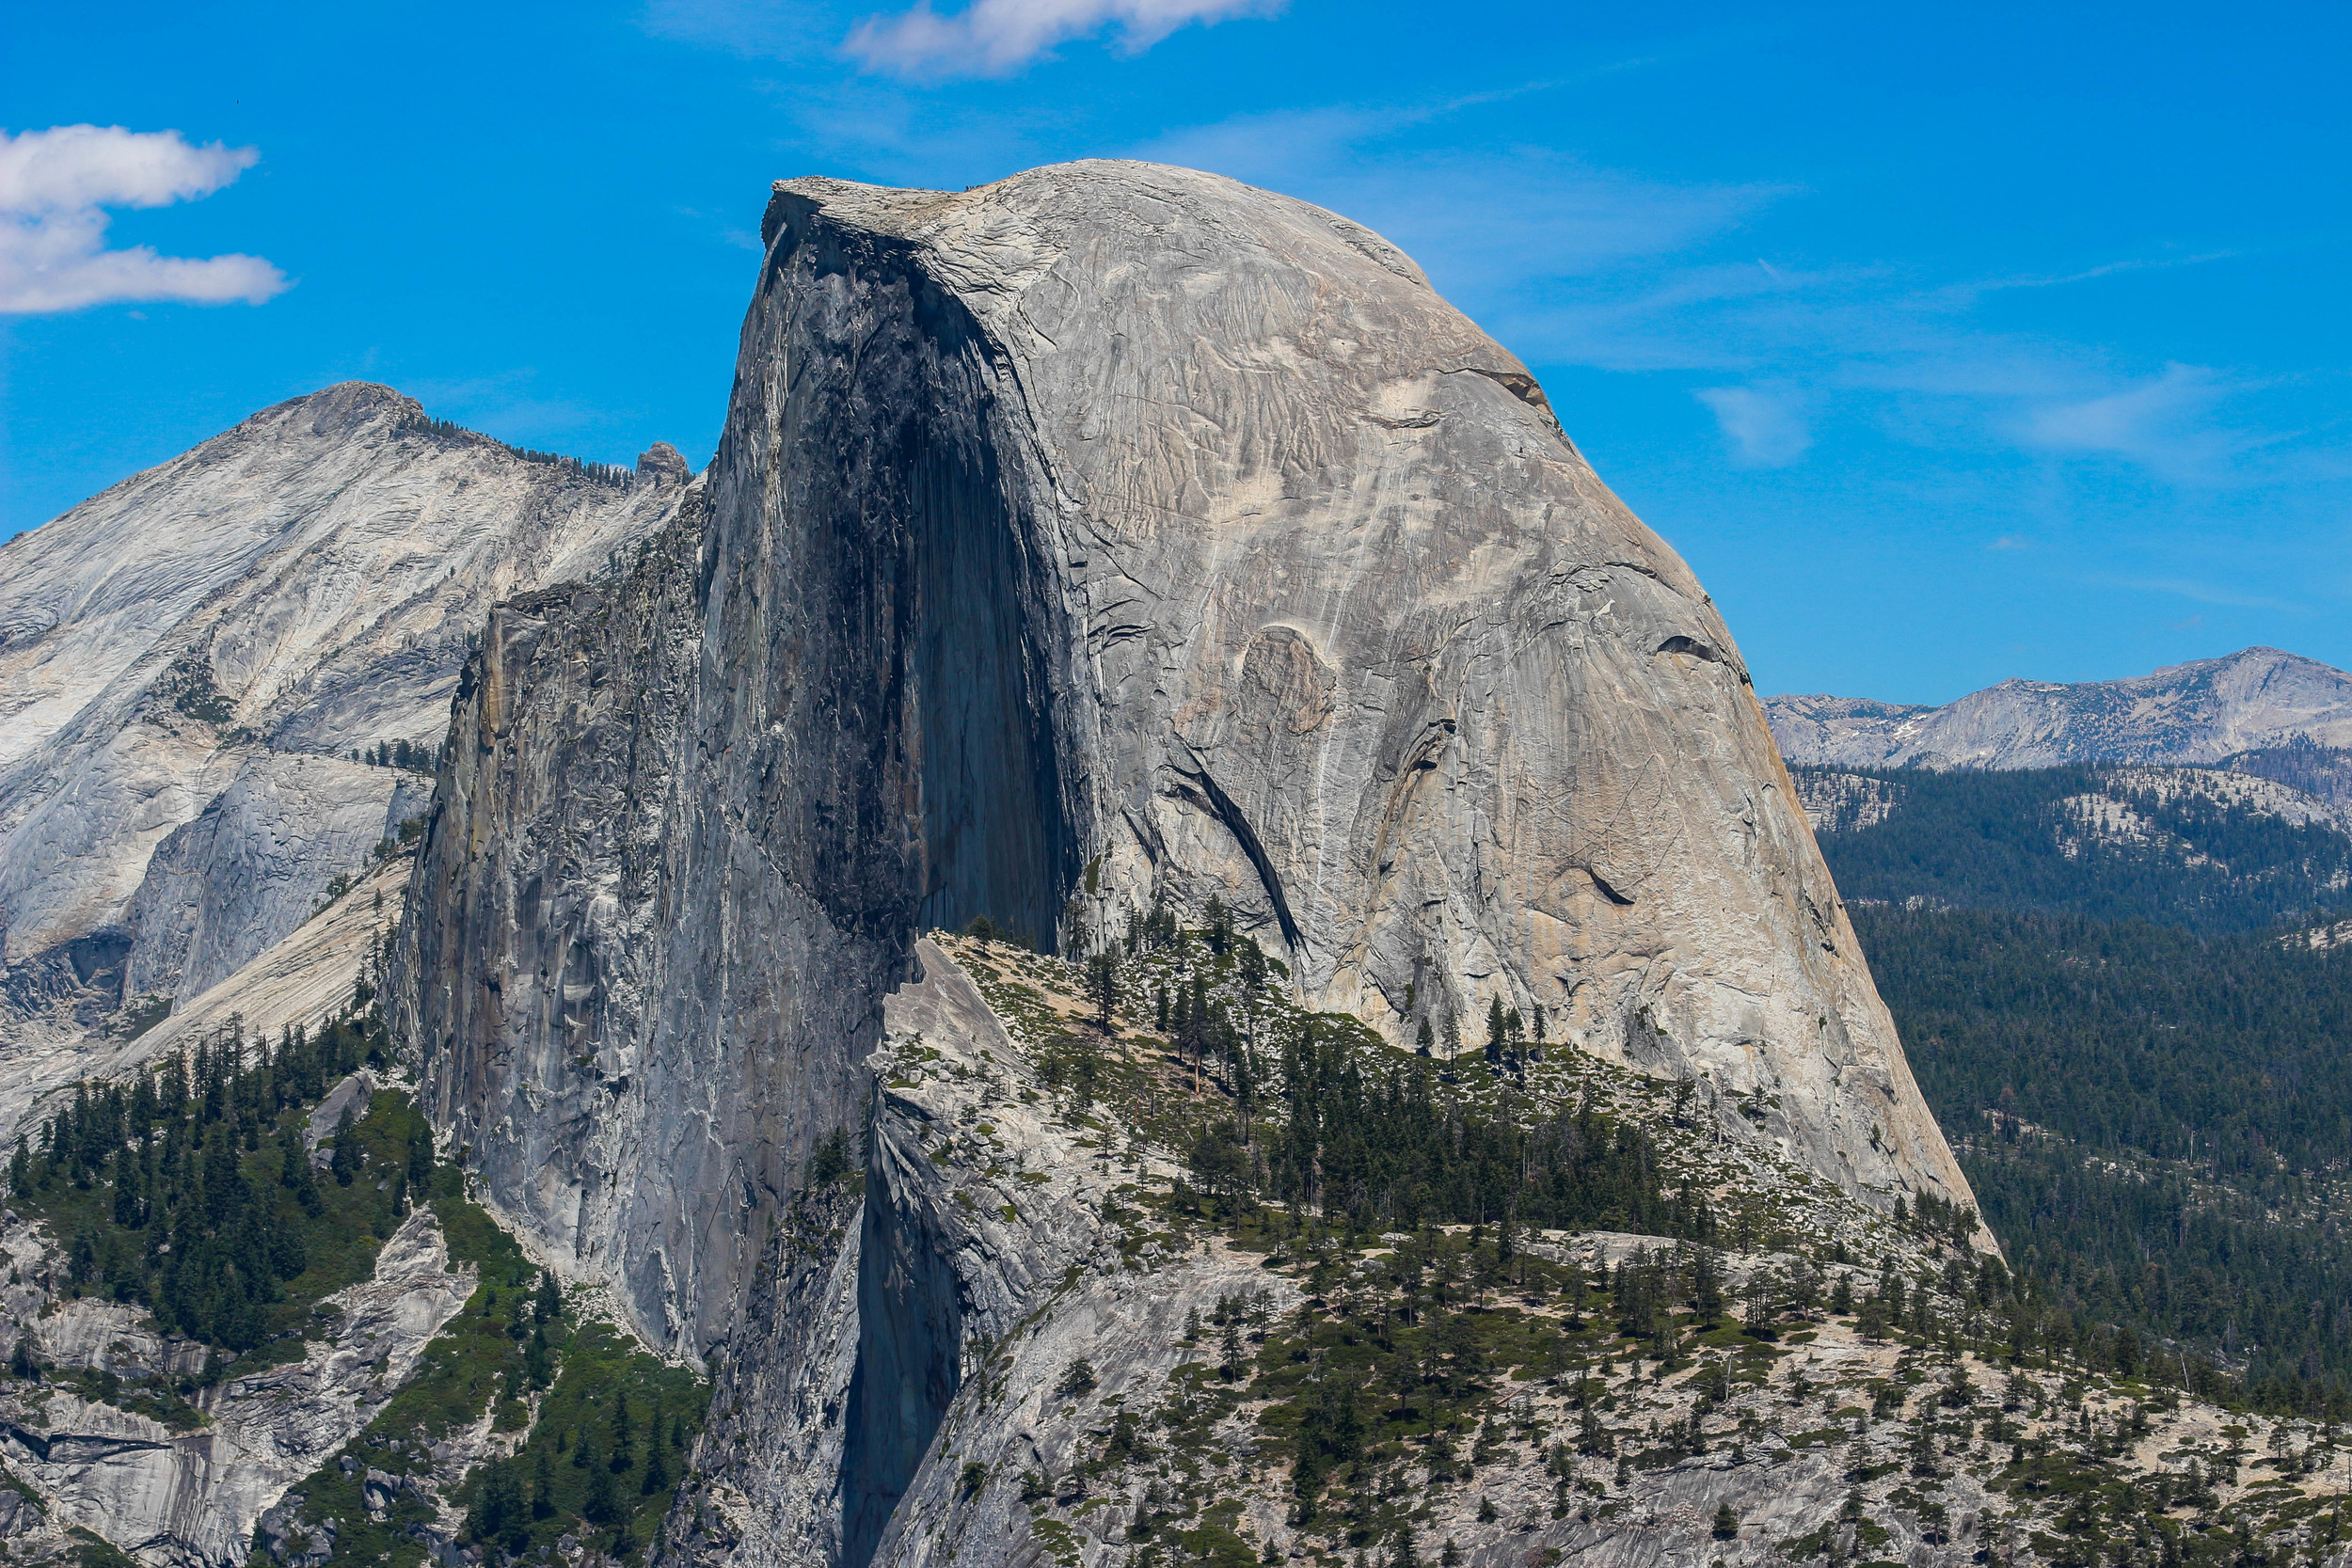 The infamous Half Dome of Yosemite National Park